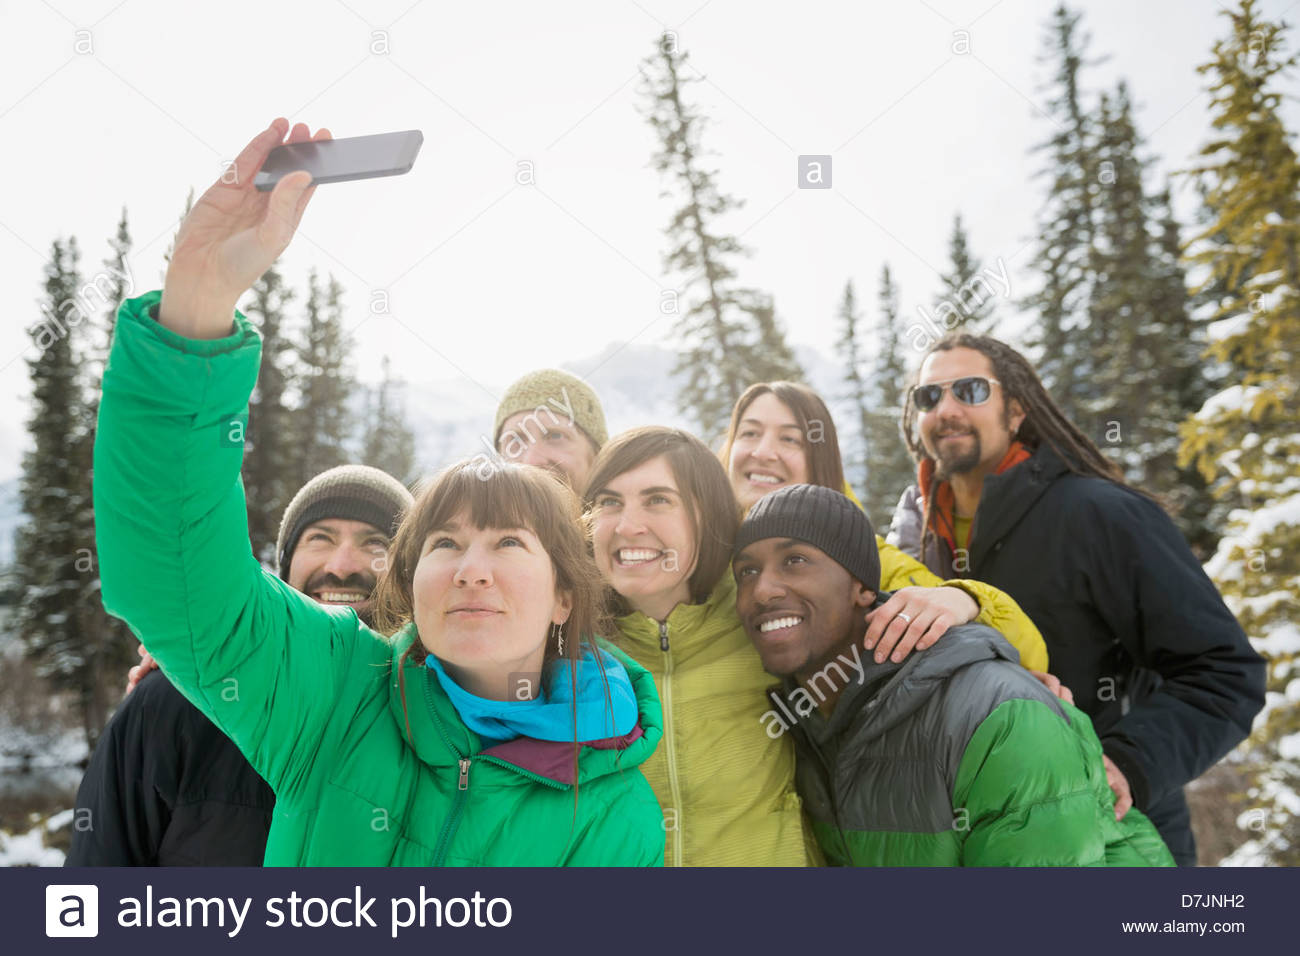 Group of friends taking self portrait with mobile phone in mountains - Stock Image